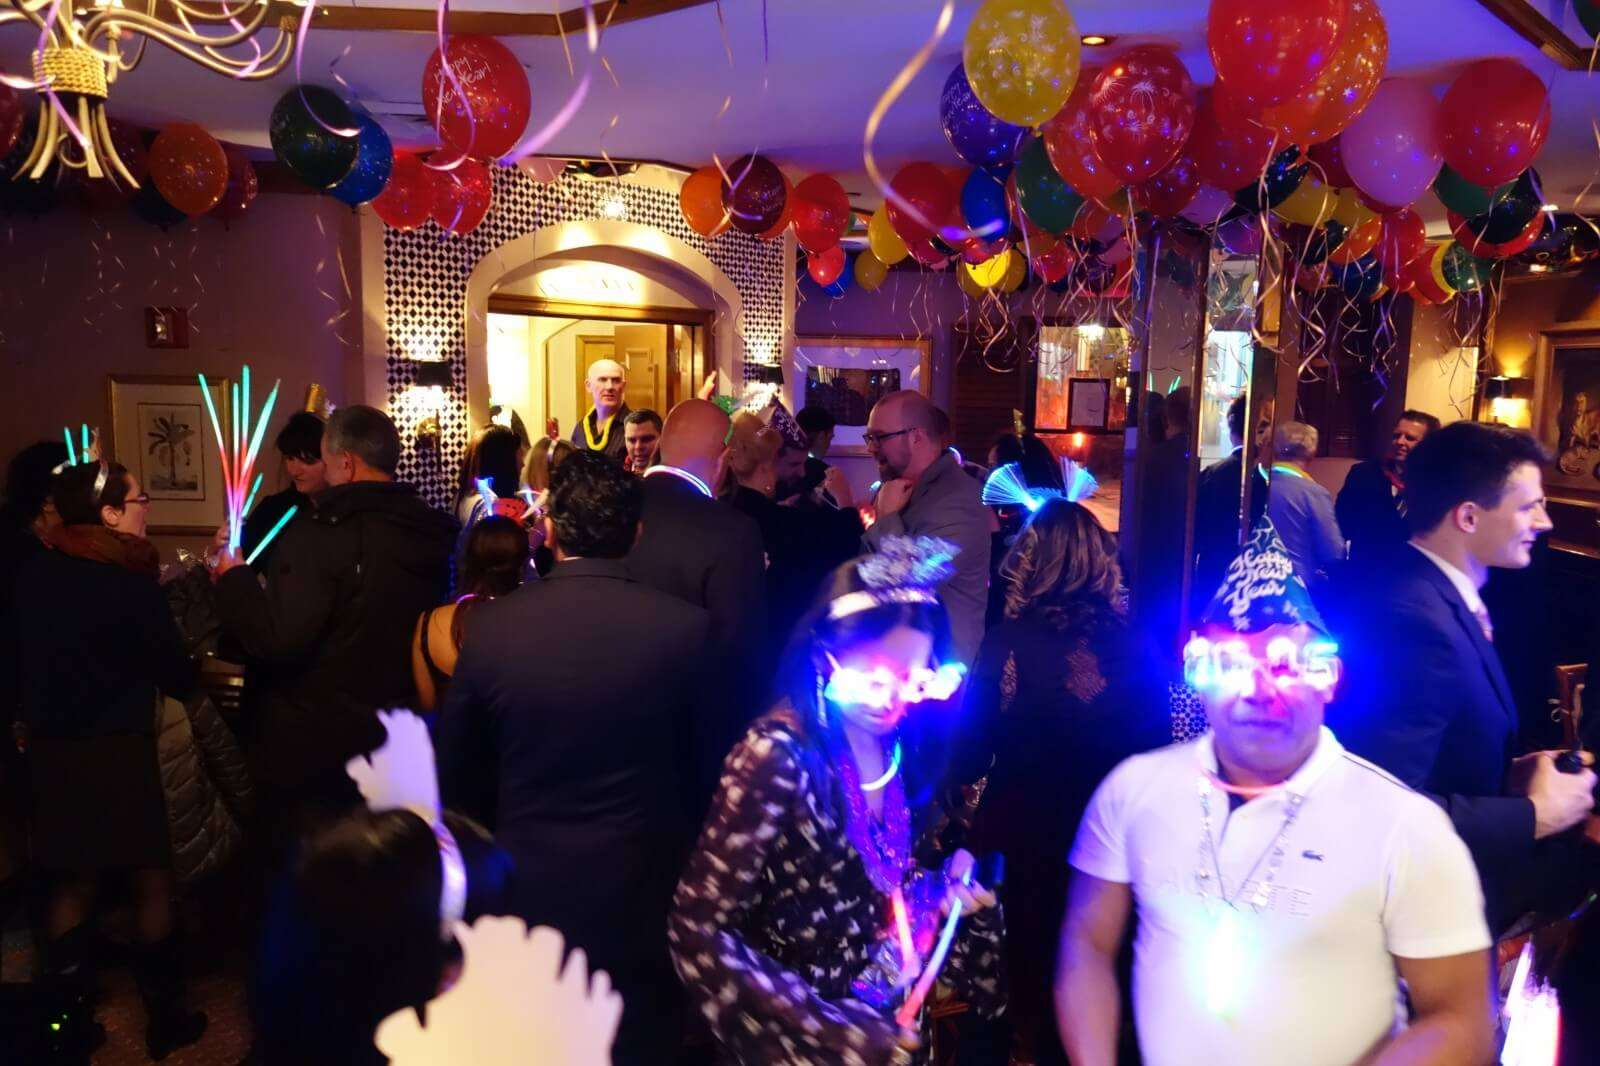 people partying while wearing glasses